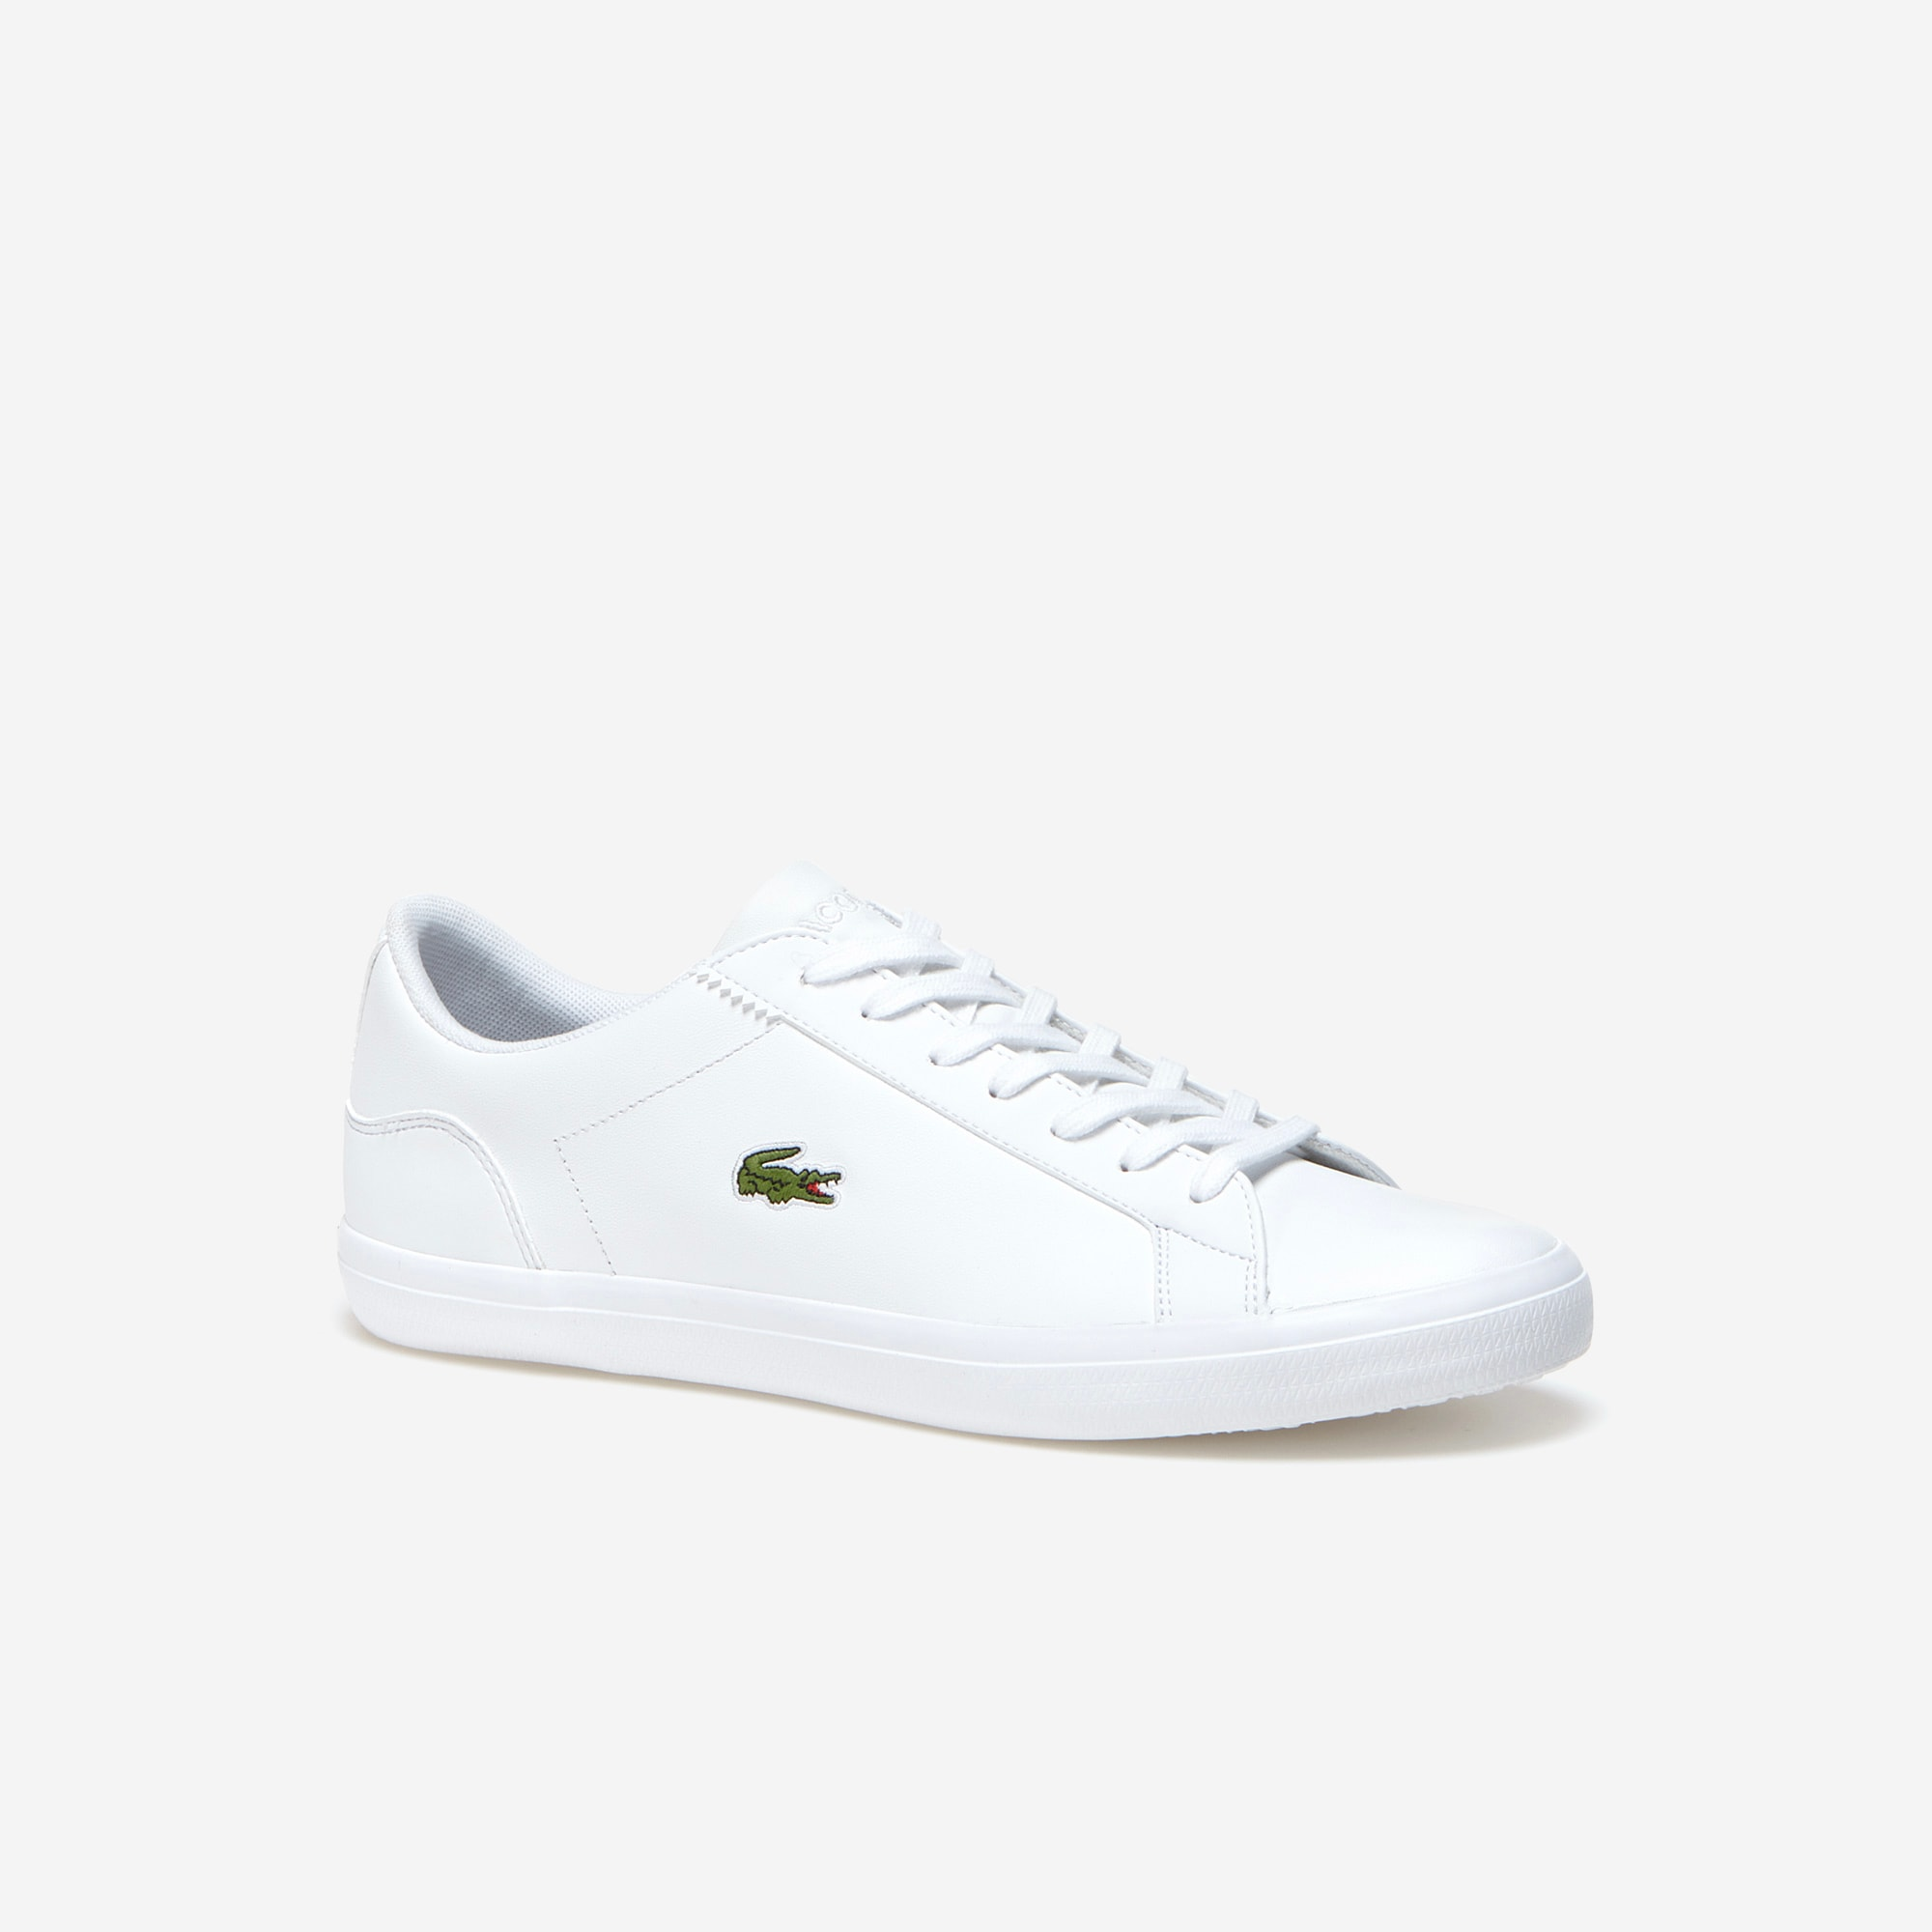 35c38df20 Men s Straightset Leather Trainers. £75.00. + 2 colors